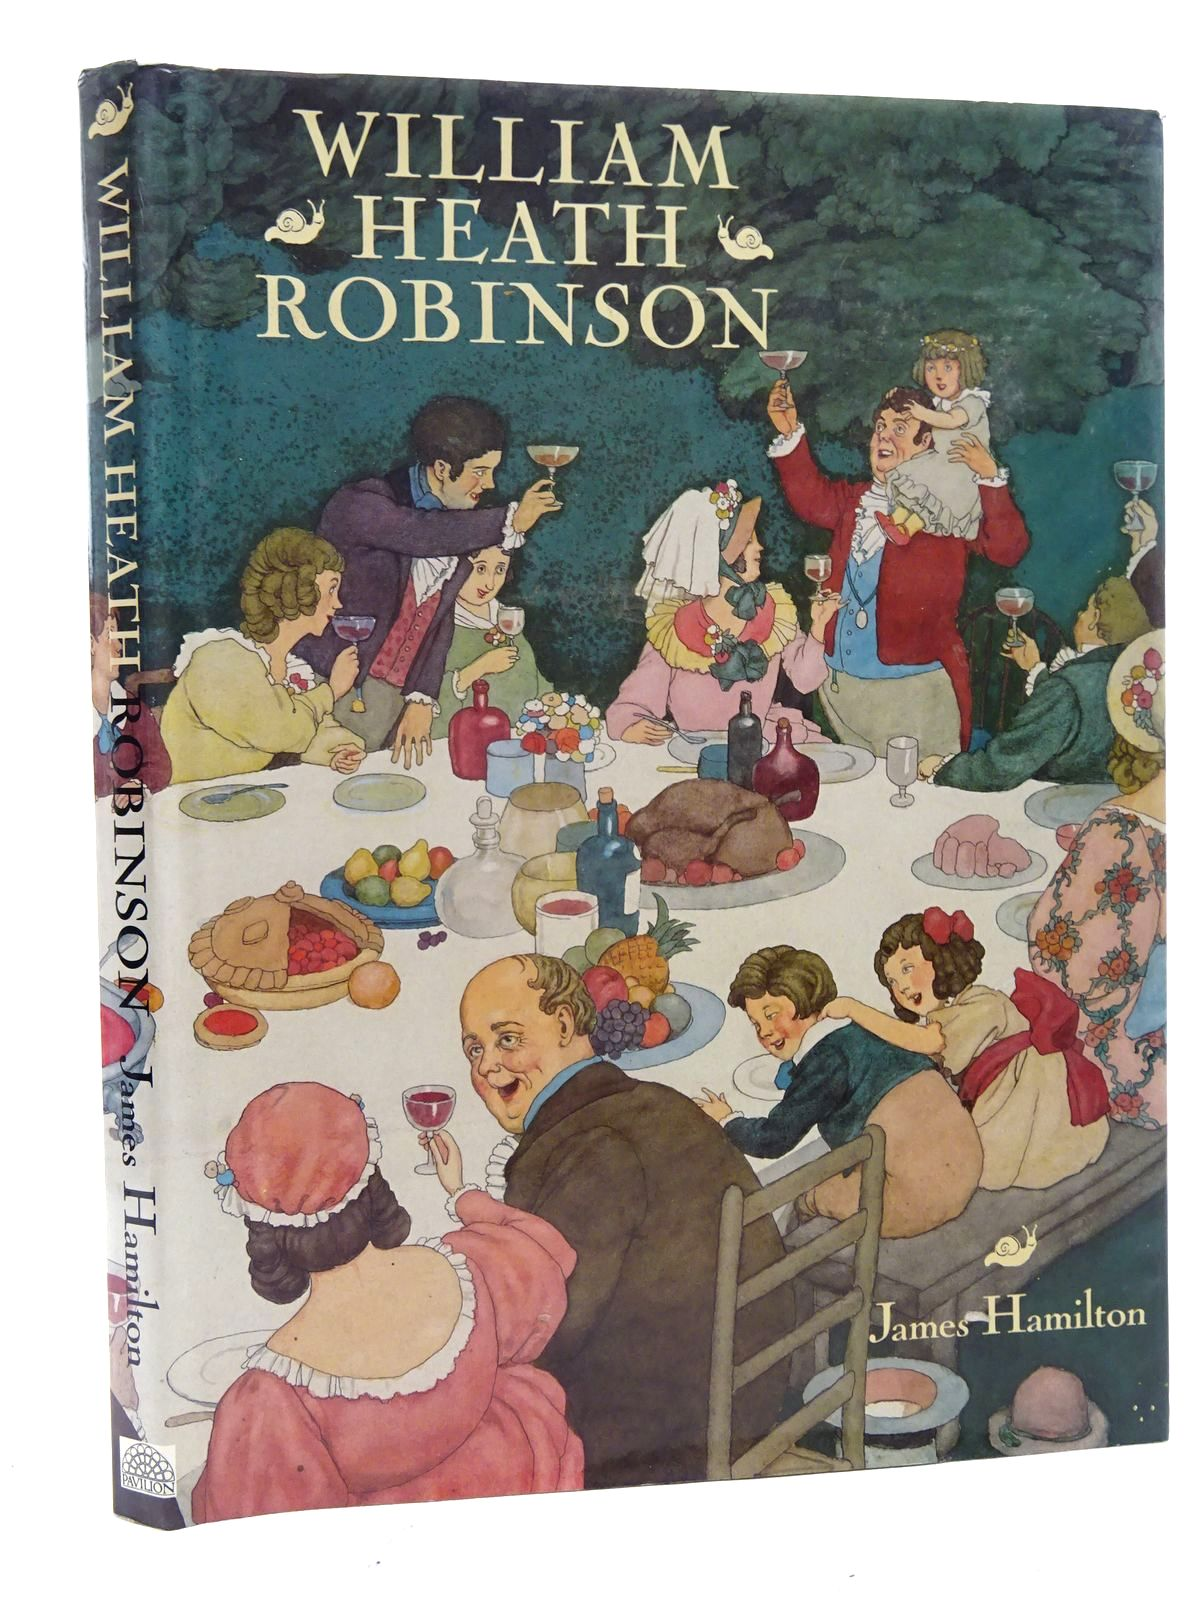 Photo of WILLIAM HEATH ROBINSON written by Hamilton, James illustrated by Robinson, W. Heath published by Pavilion Books Ltd. (STOCK CODE: 2125880)  for sale by Stella & Rose's Books